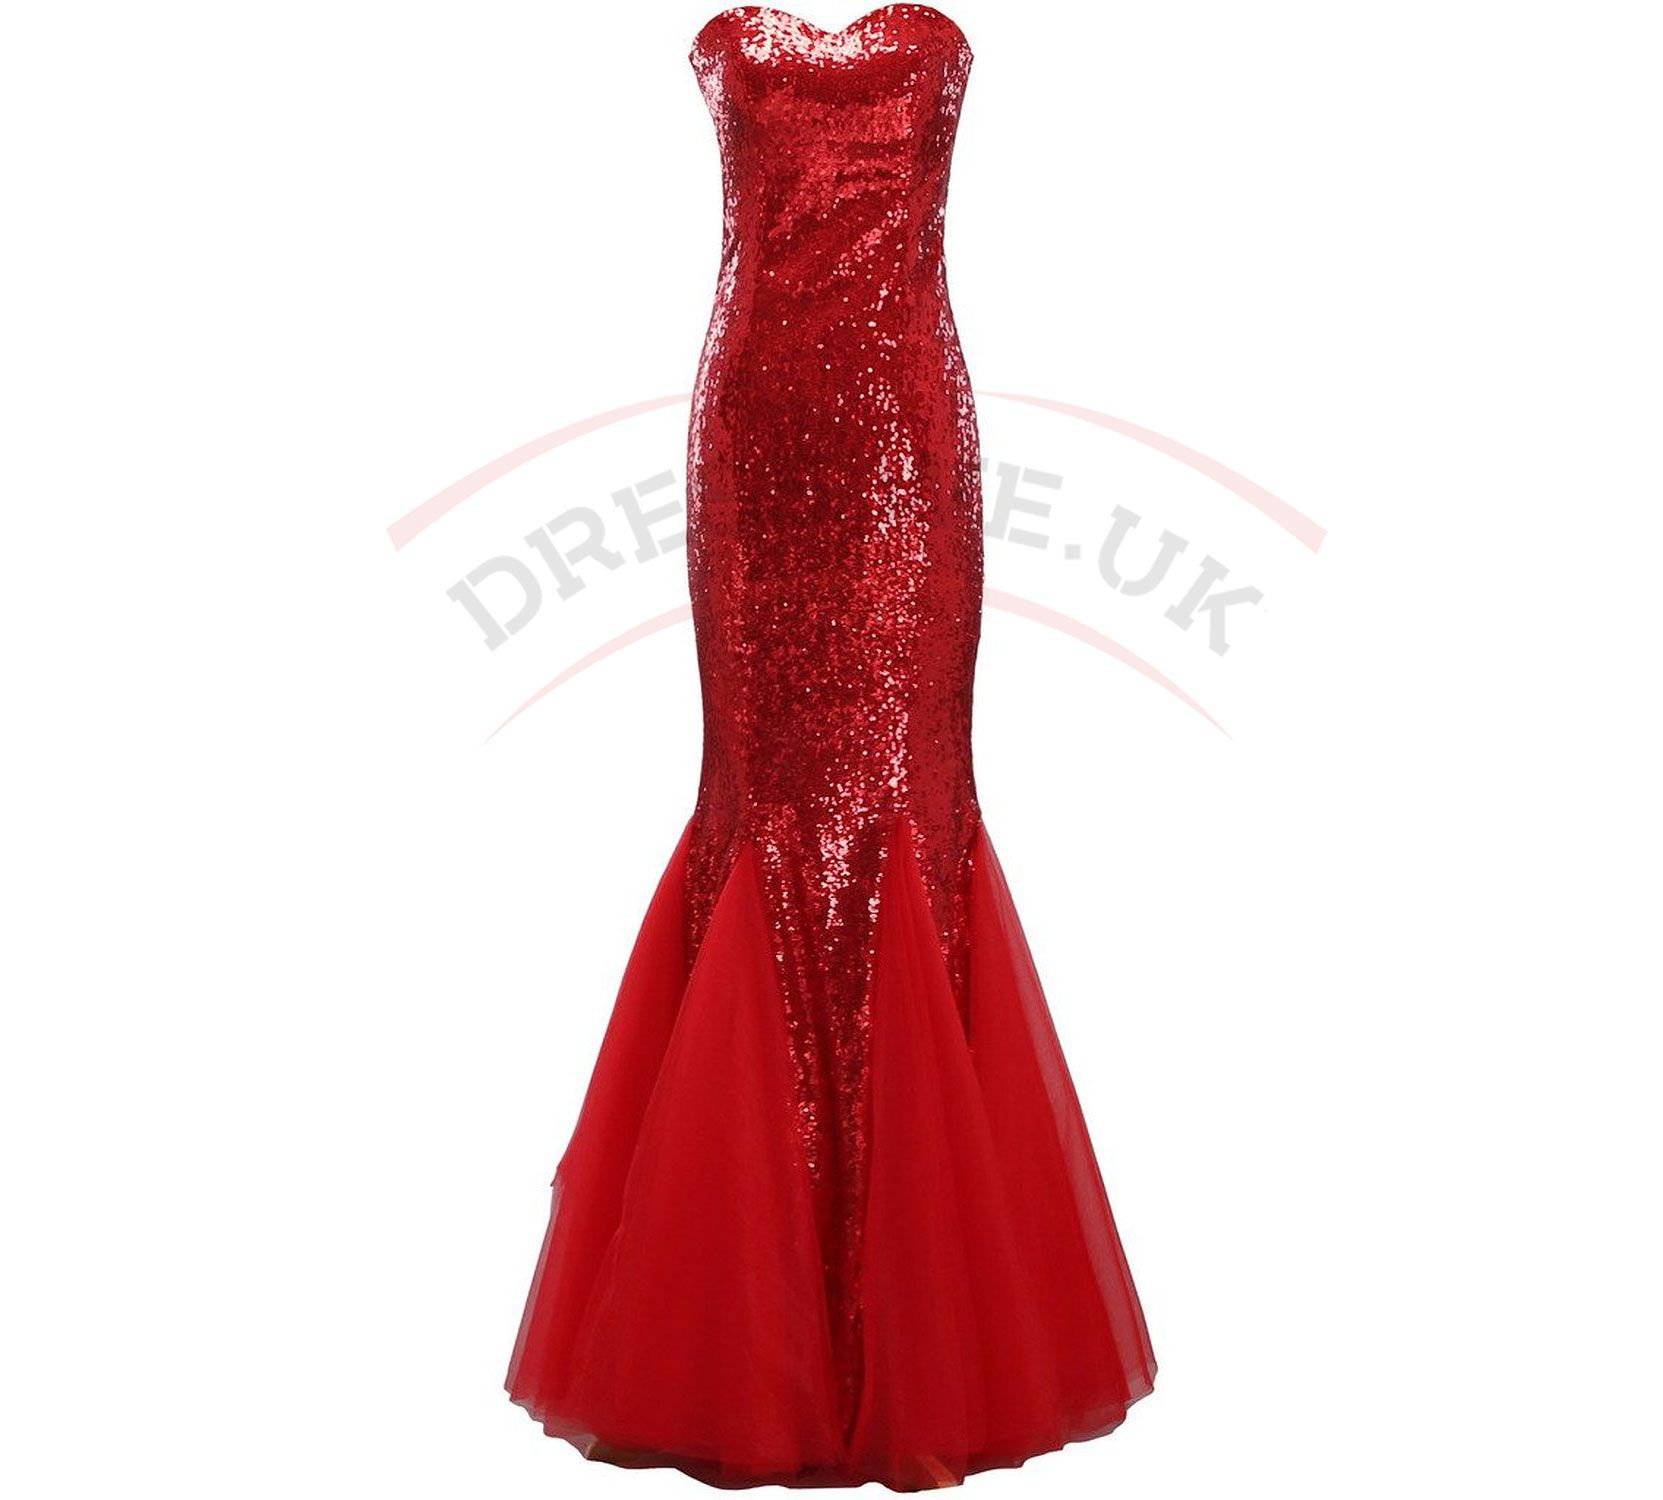 Largos sparkly mermaid prom dressestrumpet fitted prom dresses